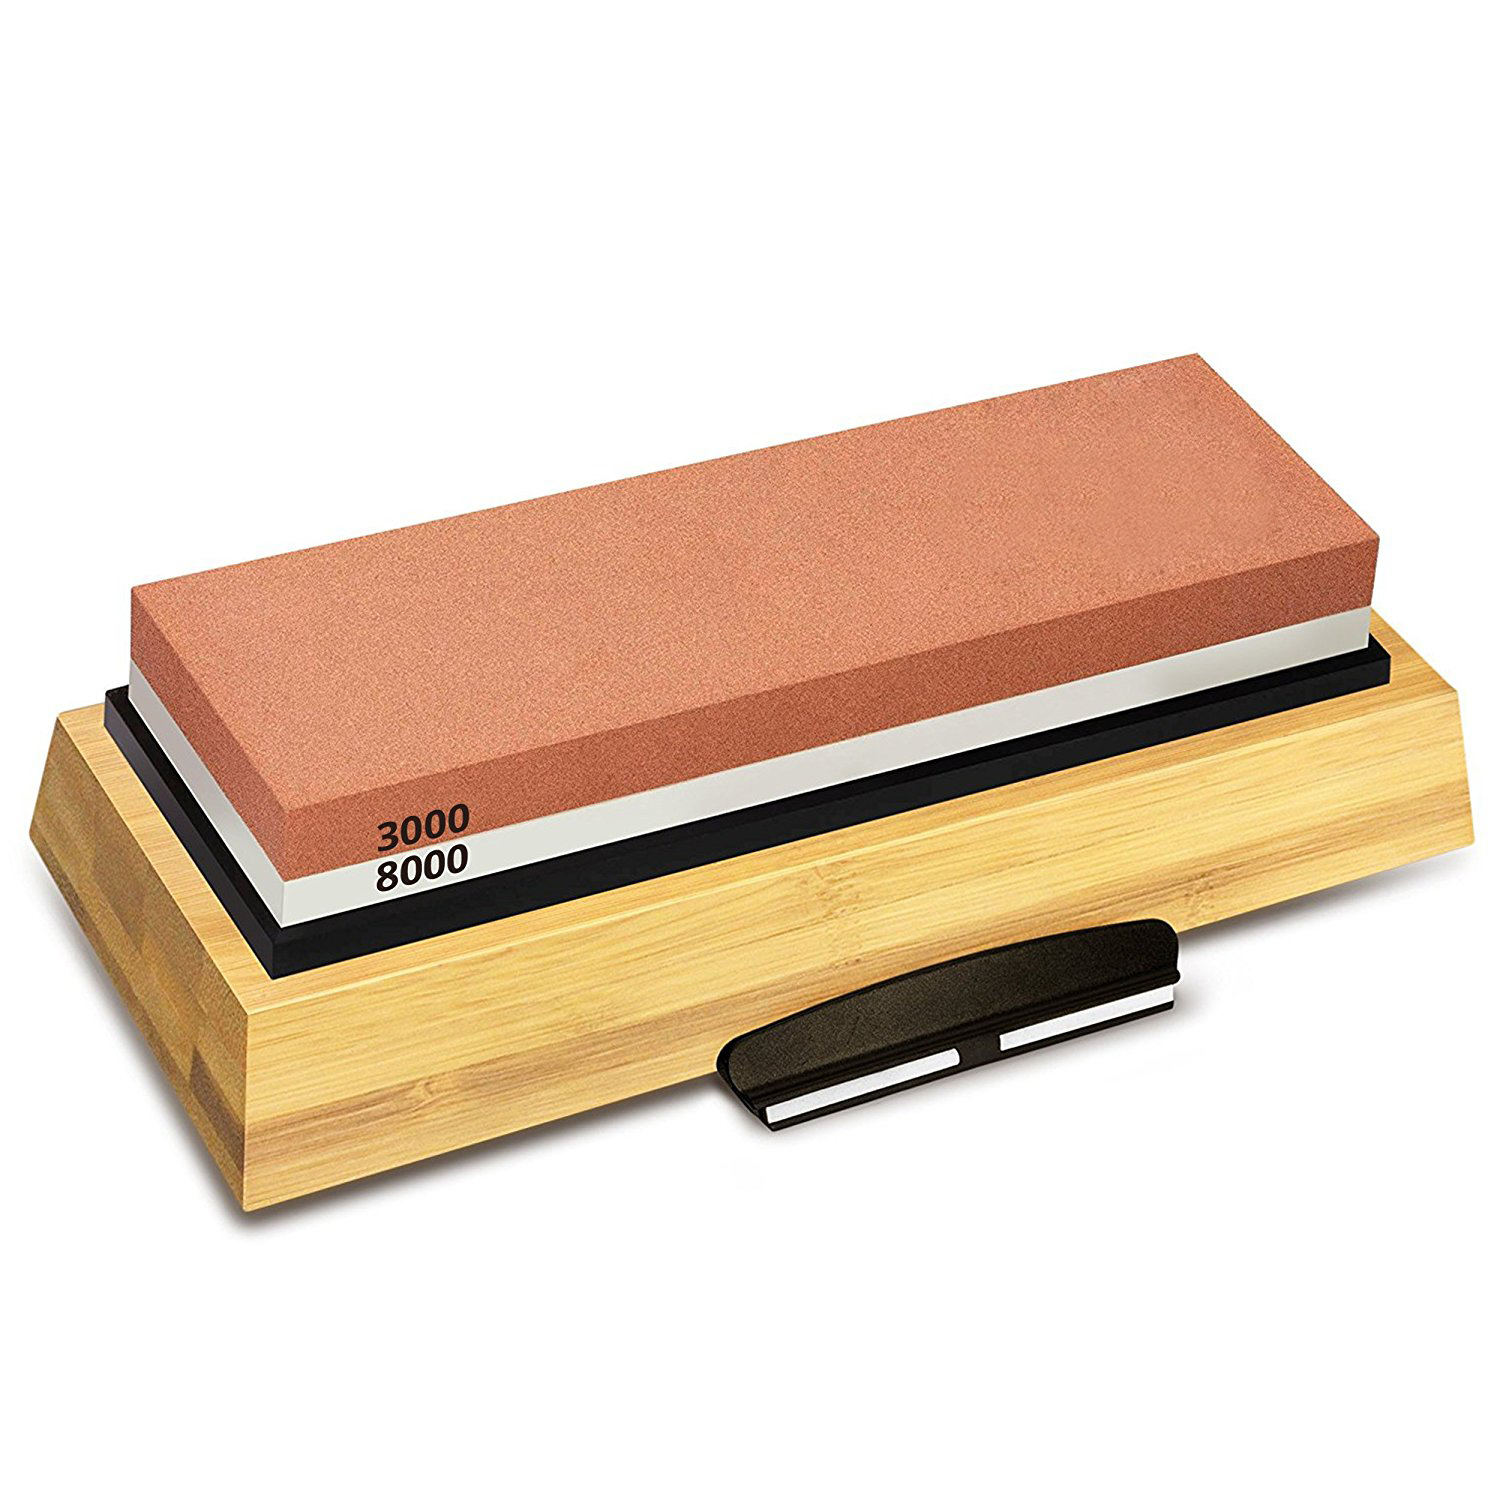 New Sharpening Stone 3000 & 8000 Grit - Double Sided Whetstone Set For Knives With Non-Slip Bamboo Base and Free Angle Guide